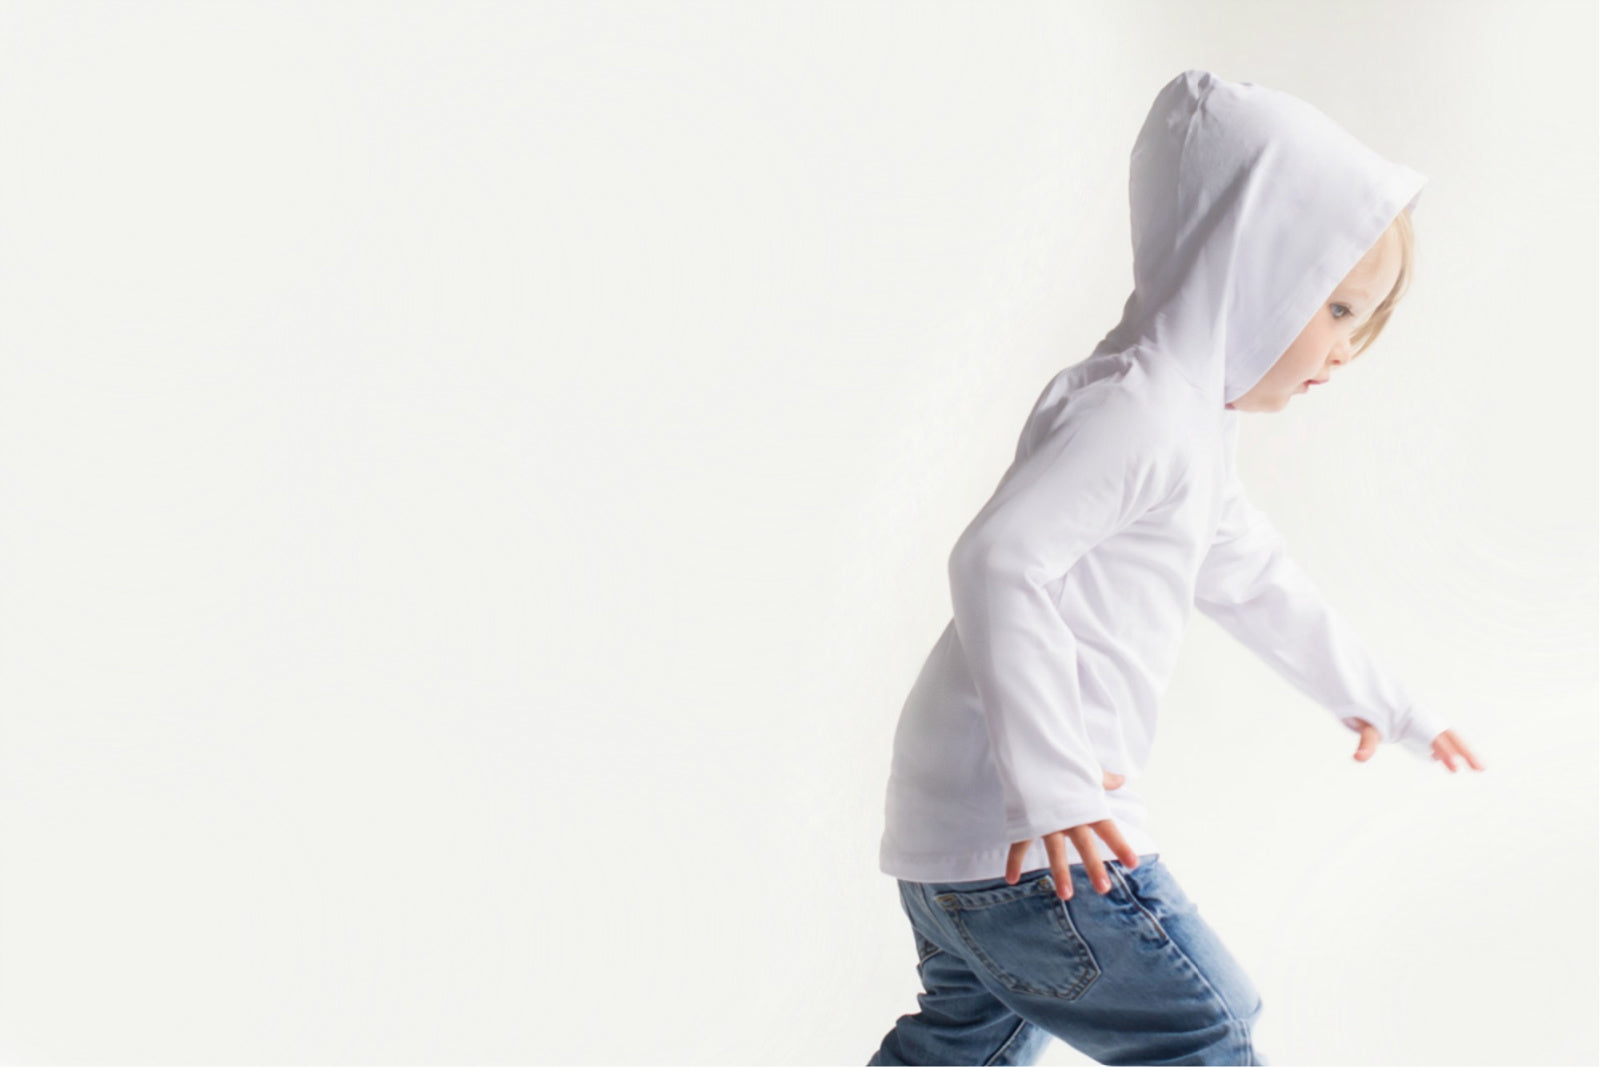 Young boy wearing a Baby Blanks white hoody with thumbholes